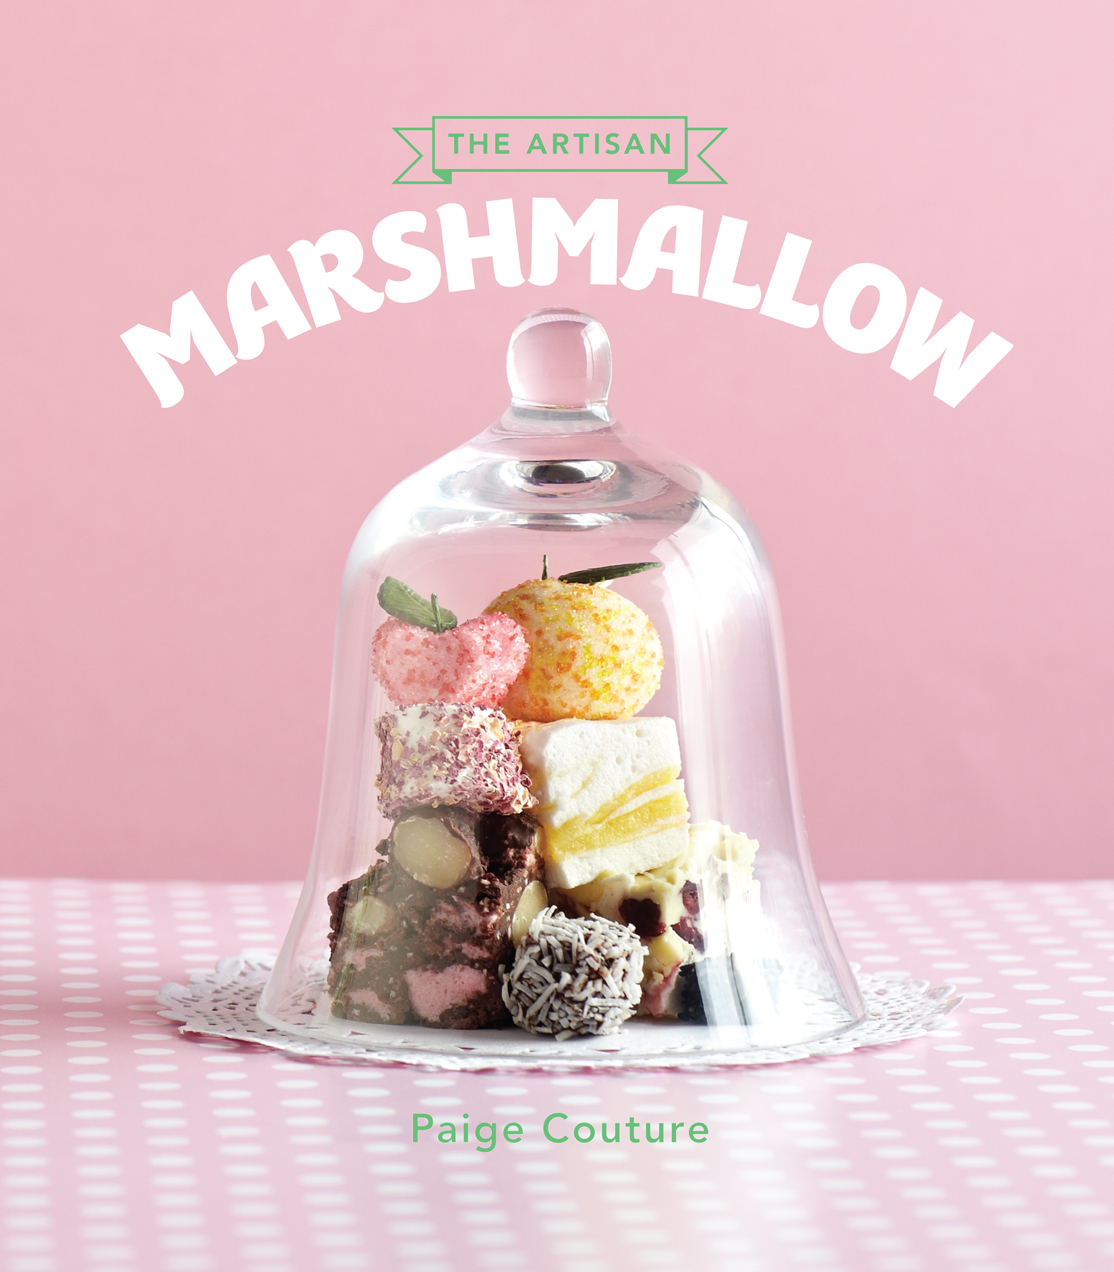 The Artisan Marshmallow